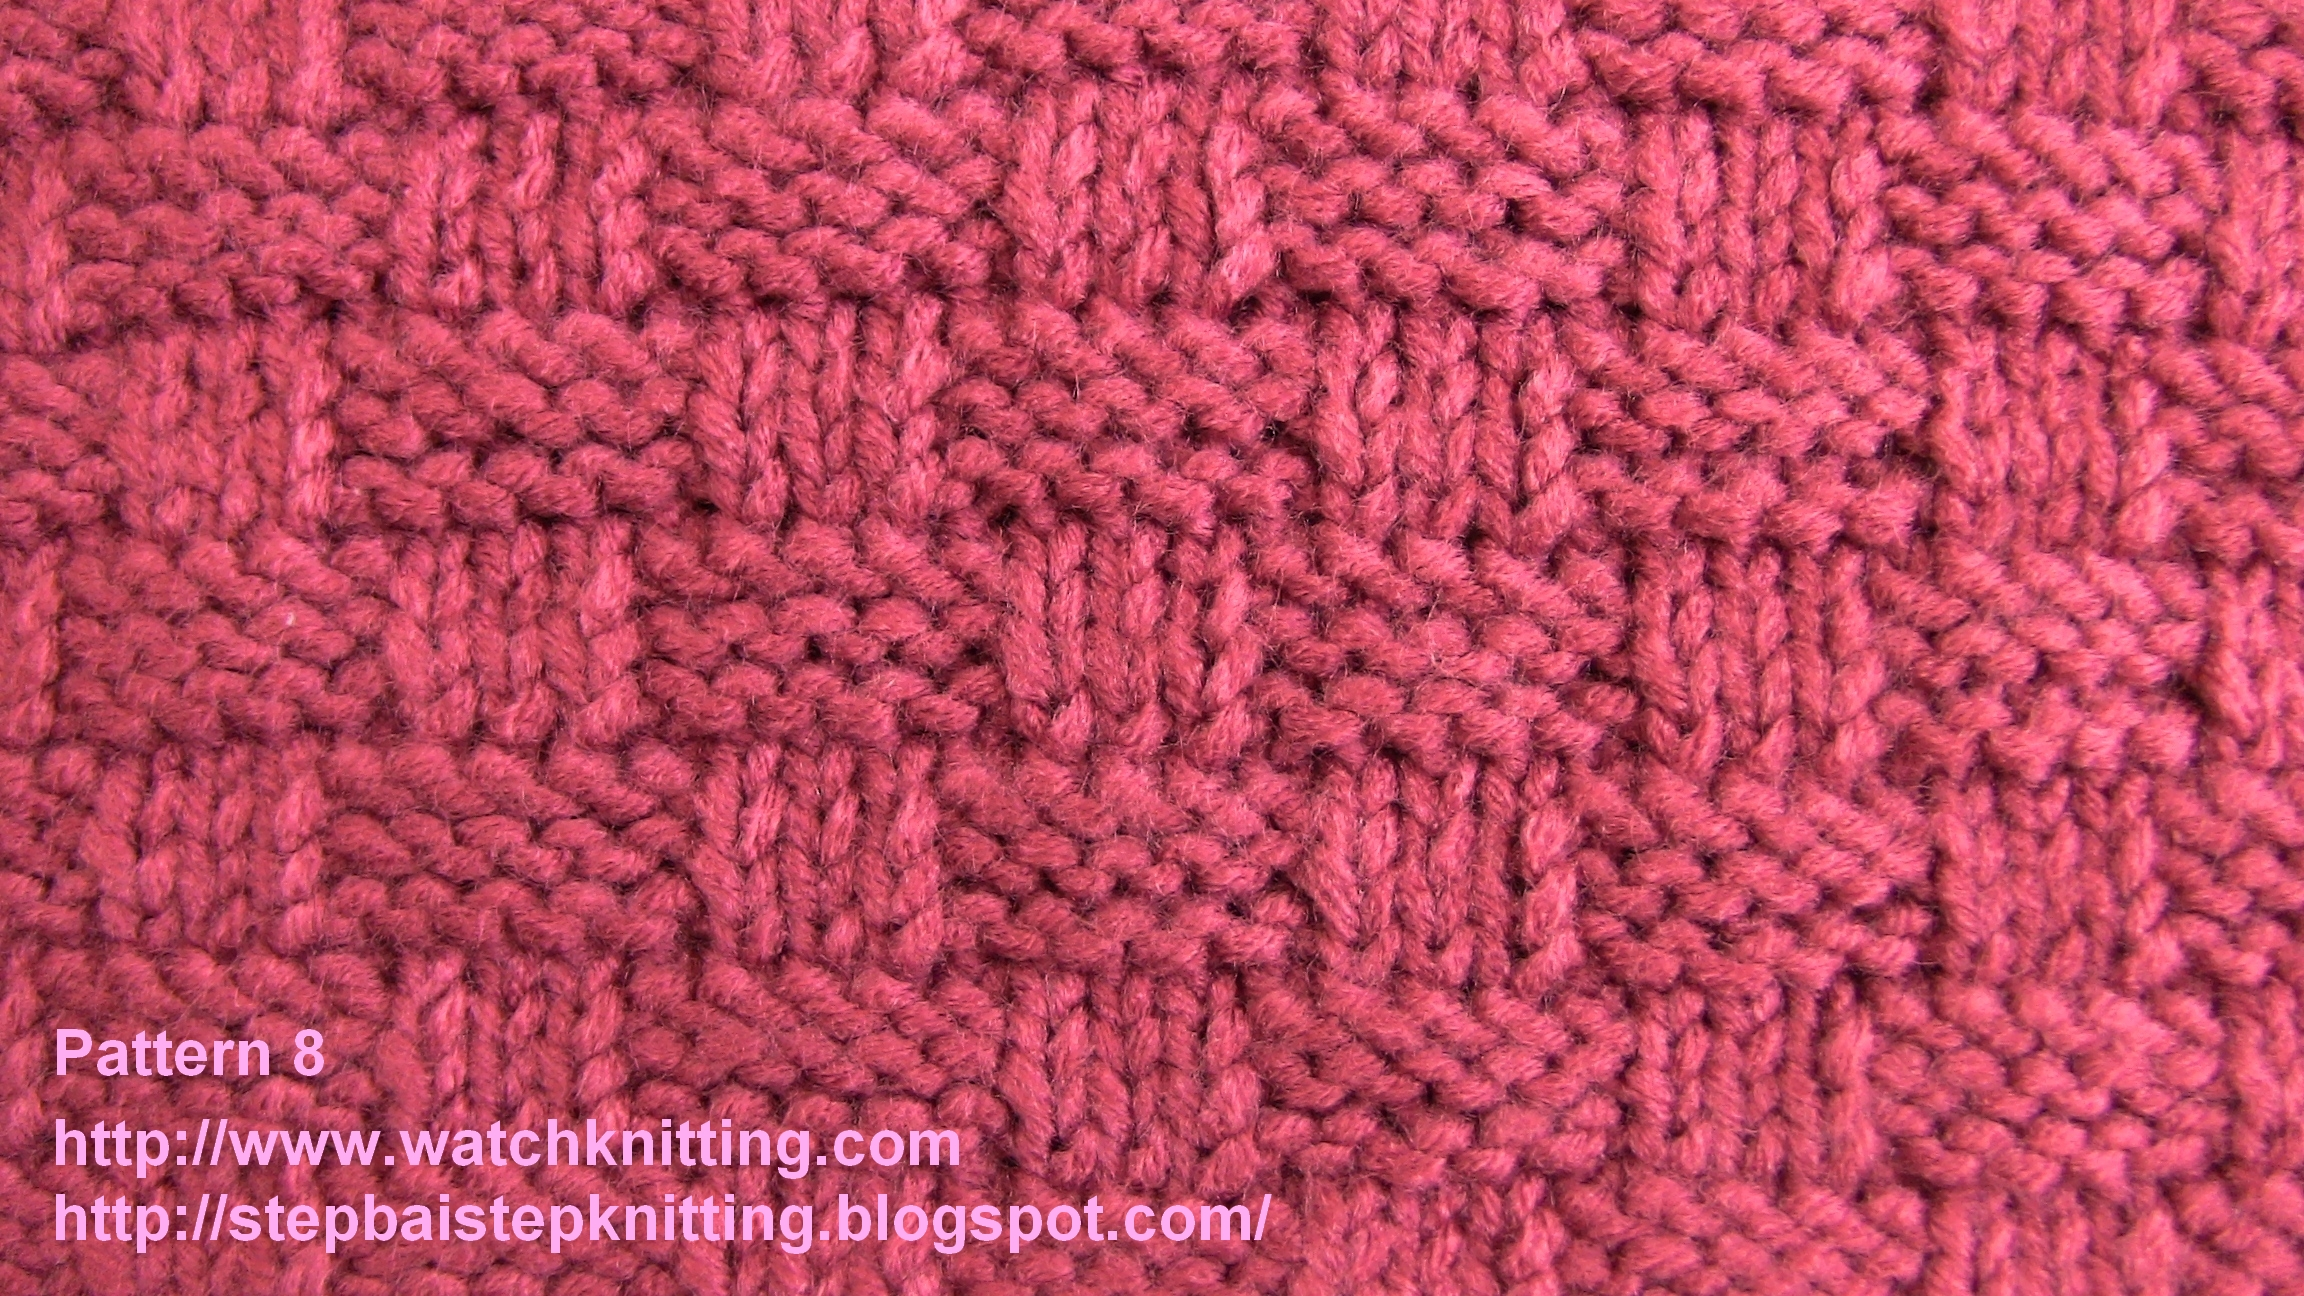 Knitting Instructions : watch Simple Knitting Models - Pattern 8 (Basket model)